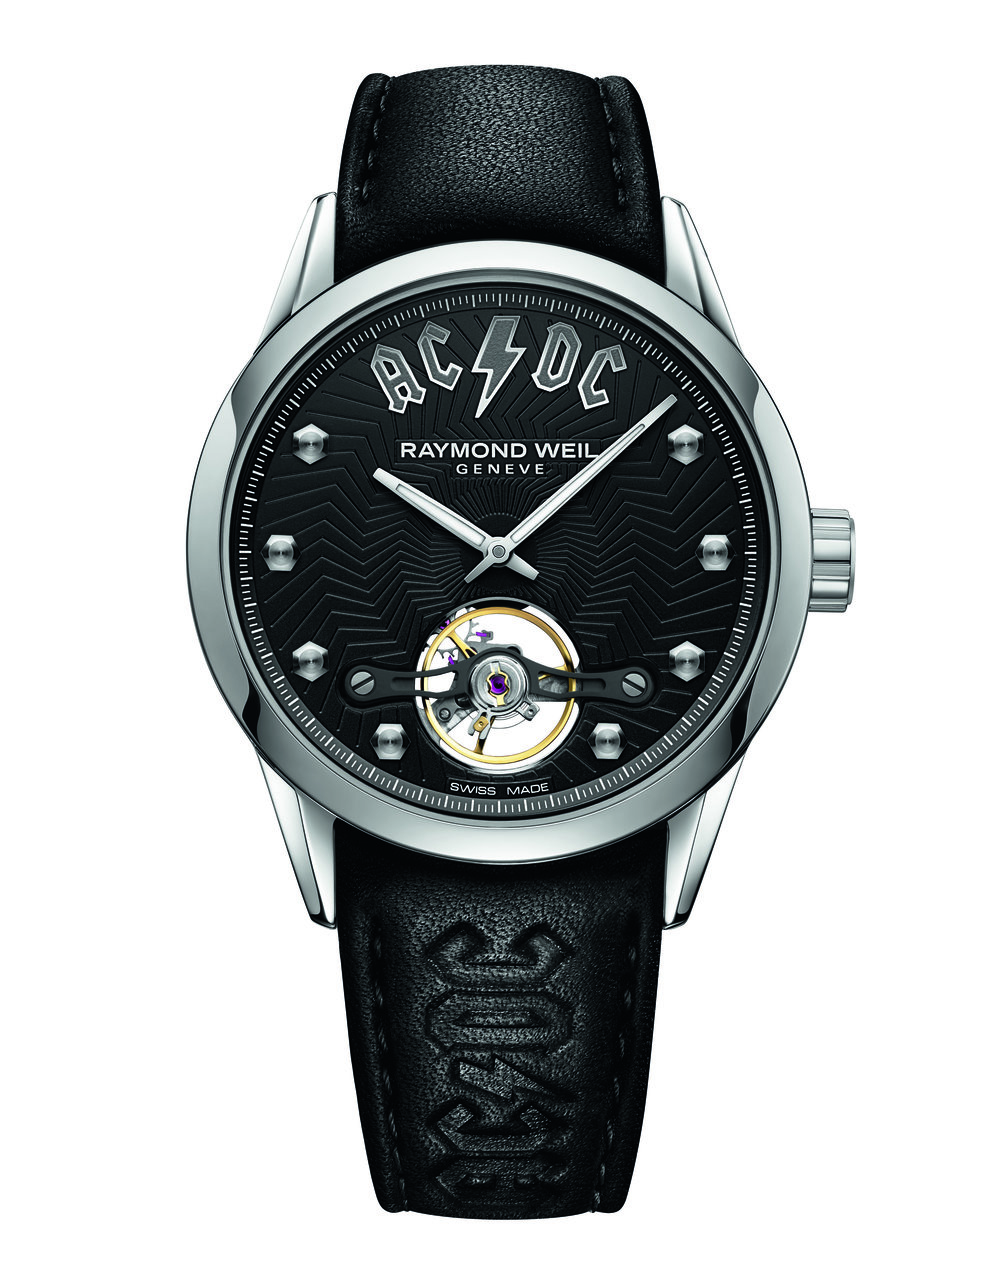 'AC/DC Limited Edition' Freelancer by RAYMOND WEIL - £1,795   www.raymond-weil.co.uk